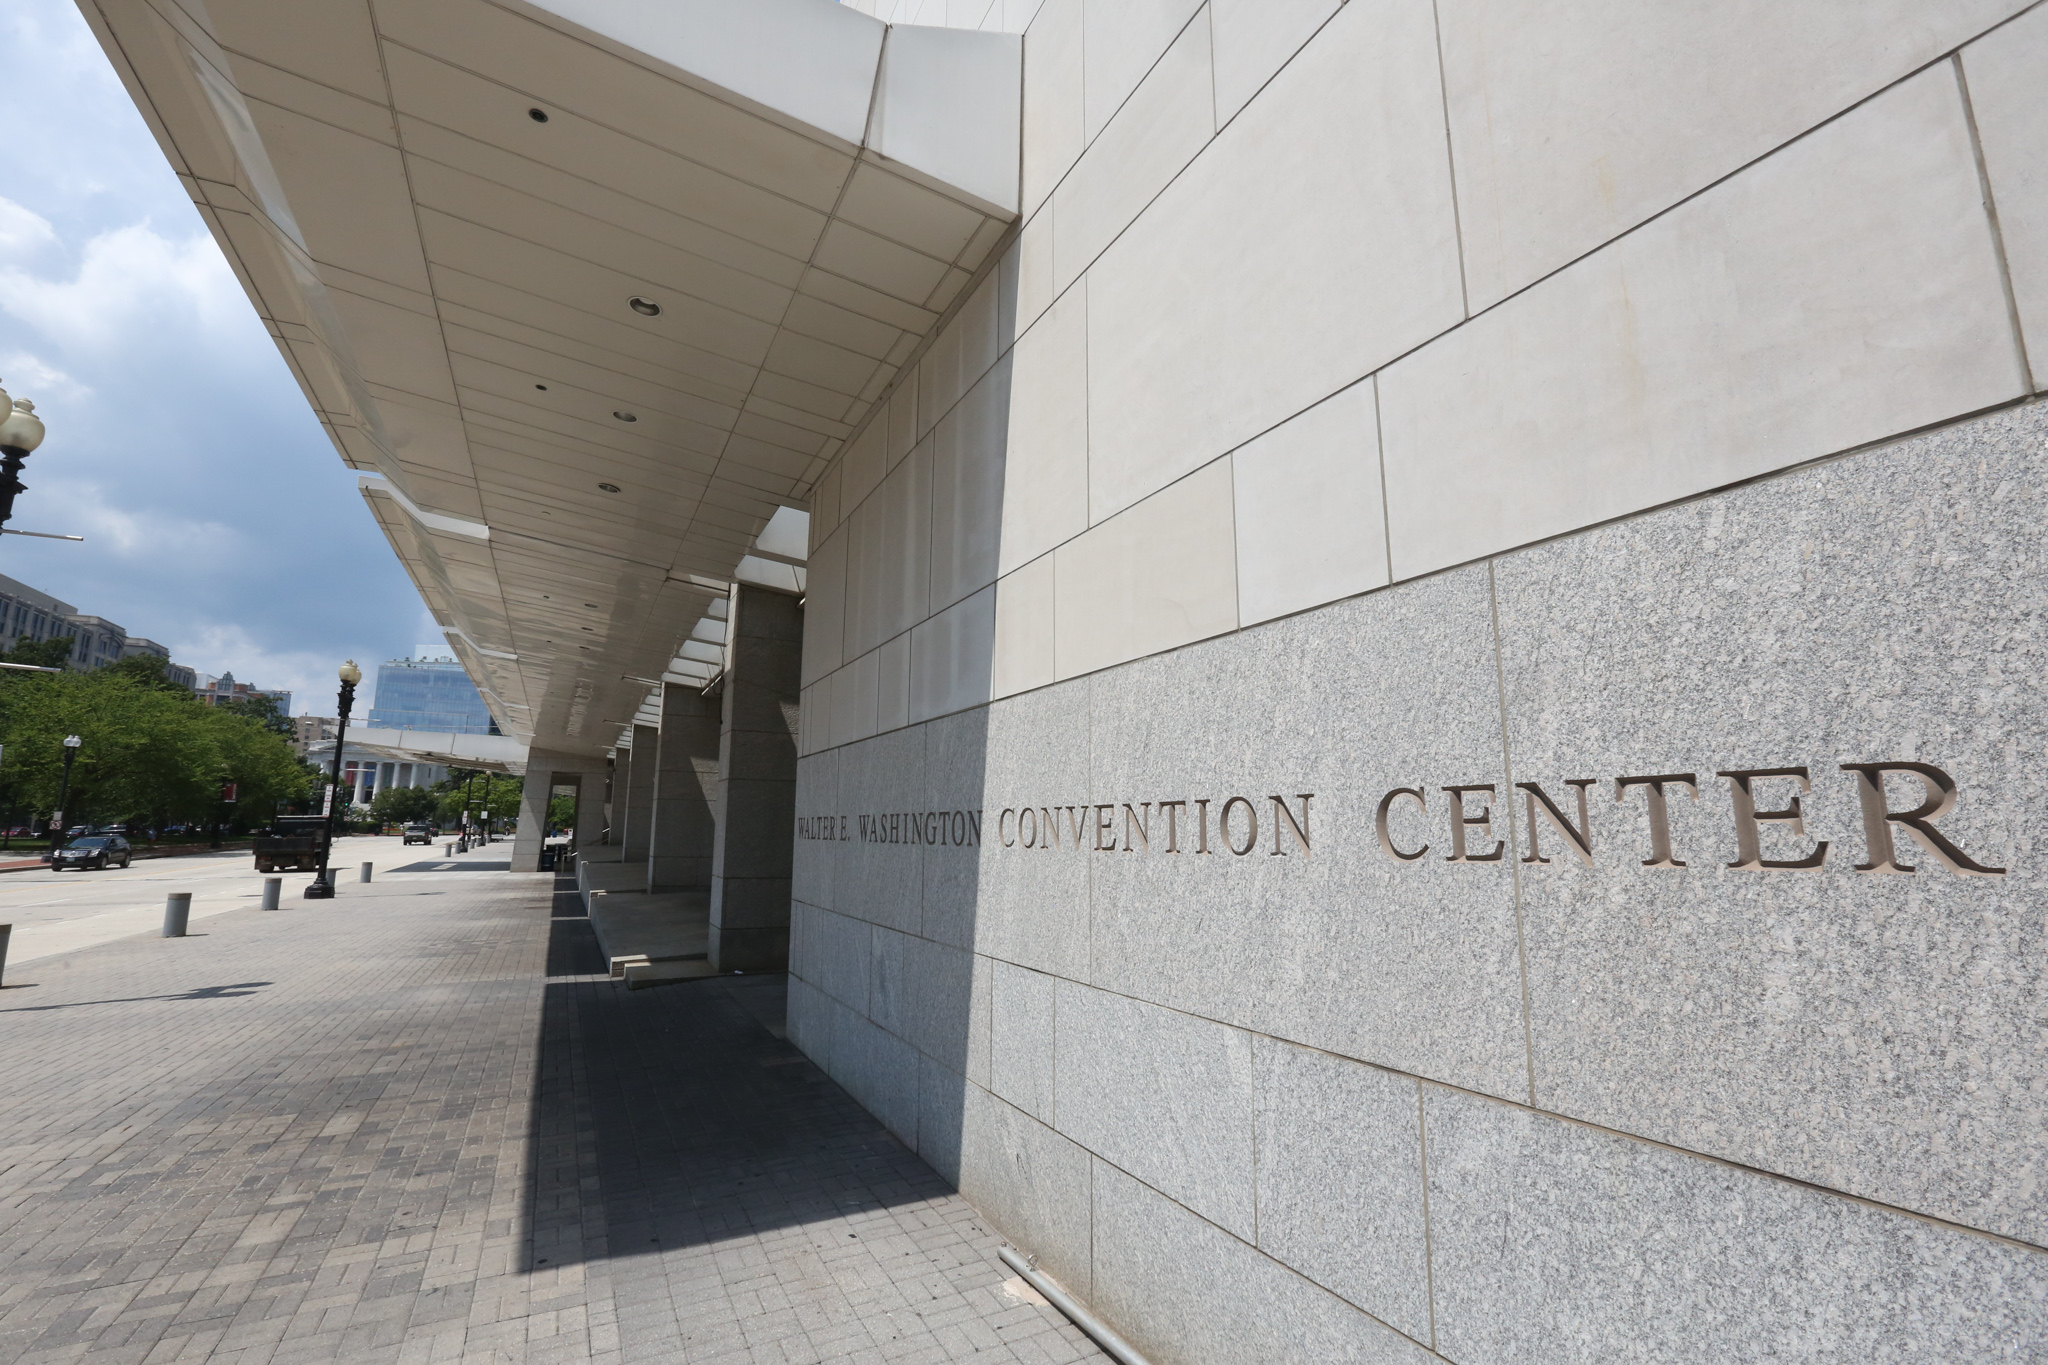 Greg O'Dell: D.C.'s unconventional convention man